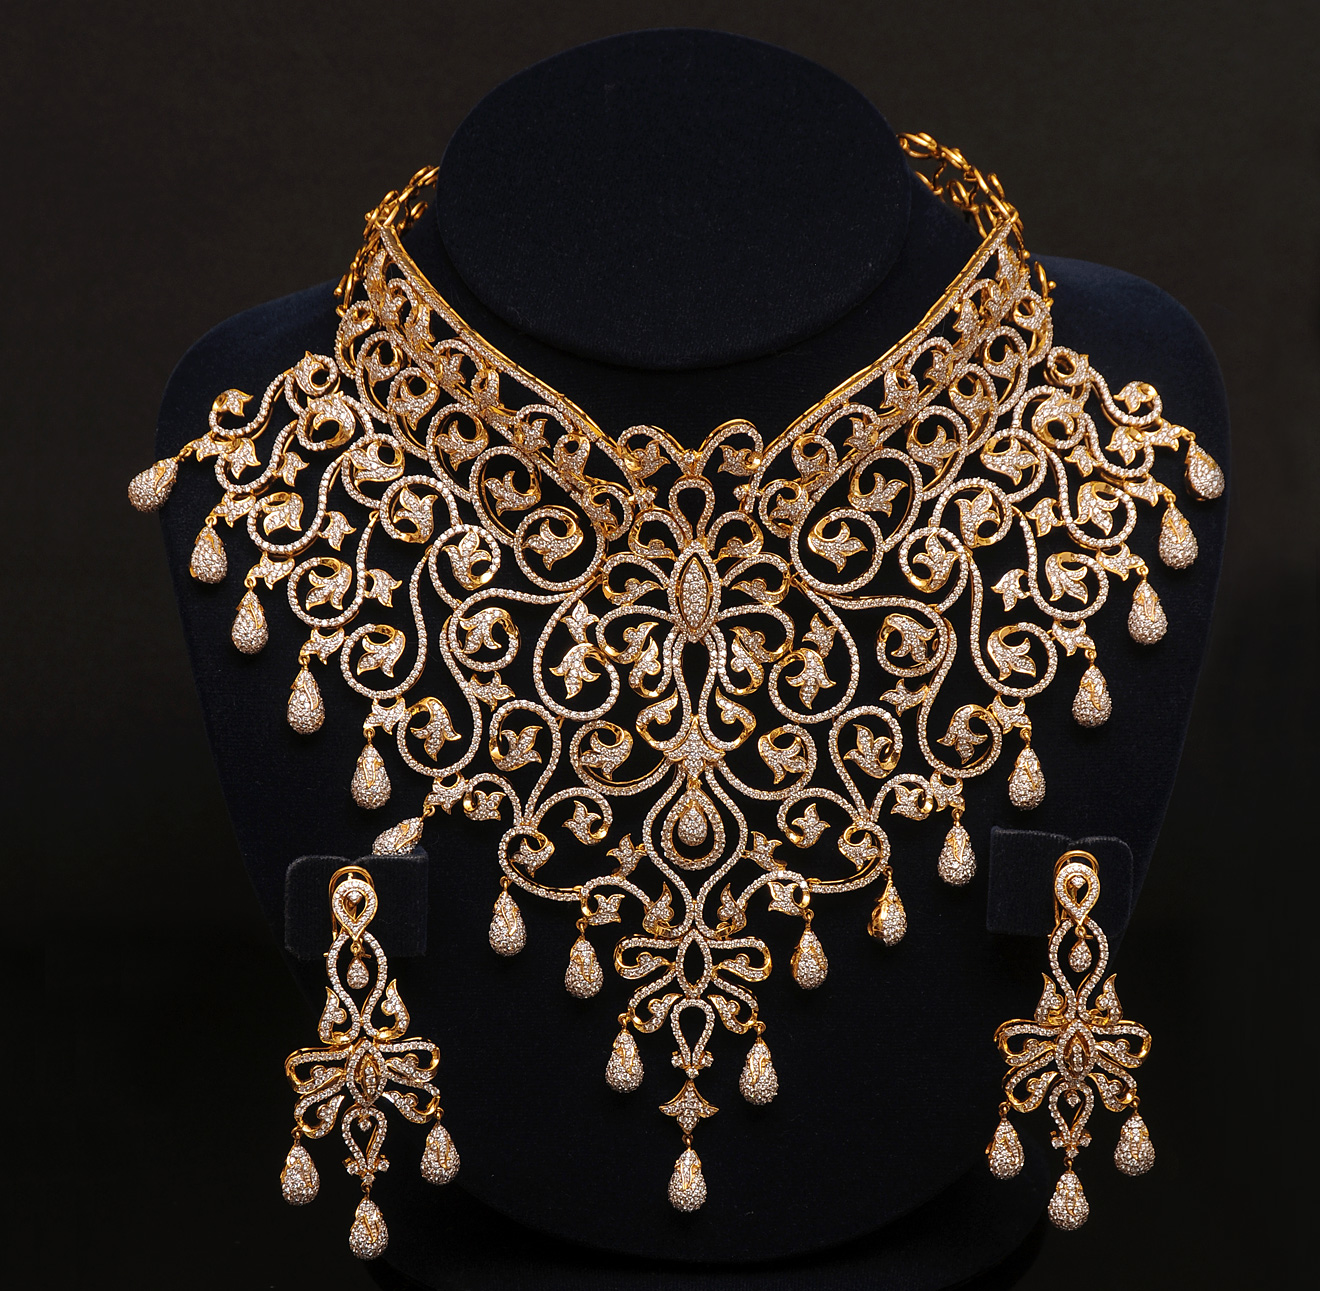 Gold And Diamond Jewellery Designs Indian Diamond Choker